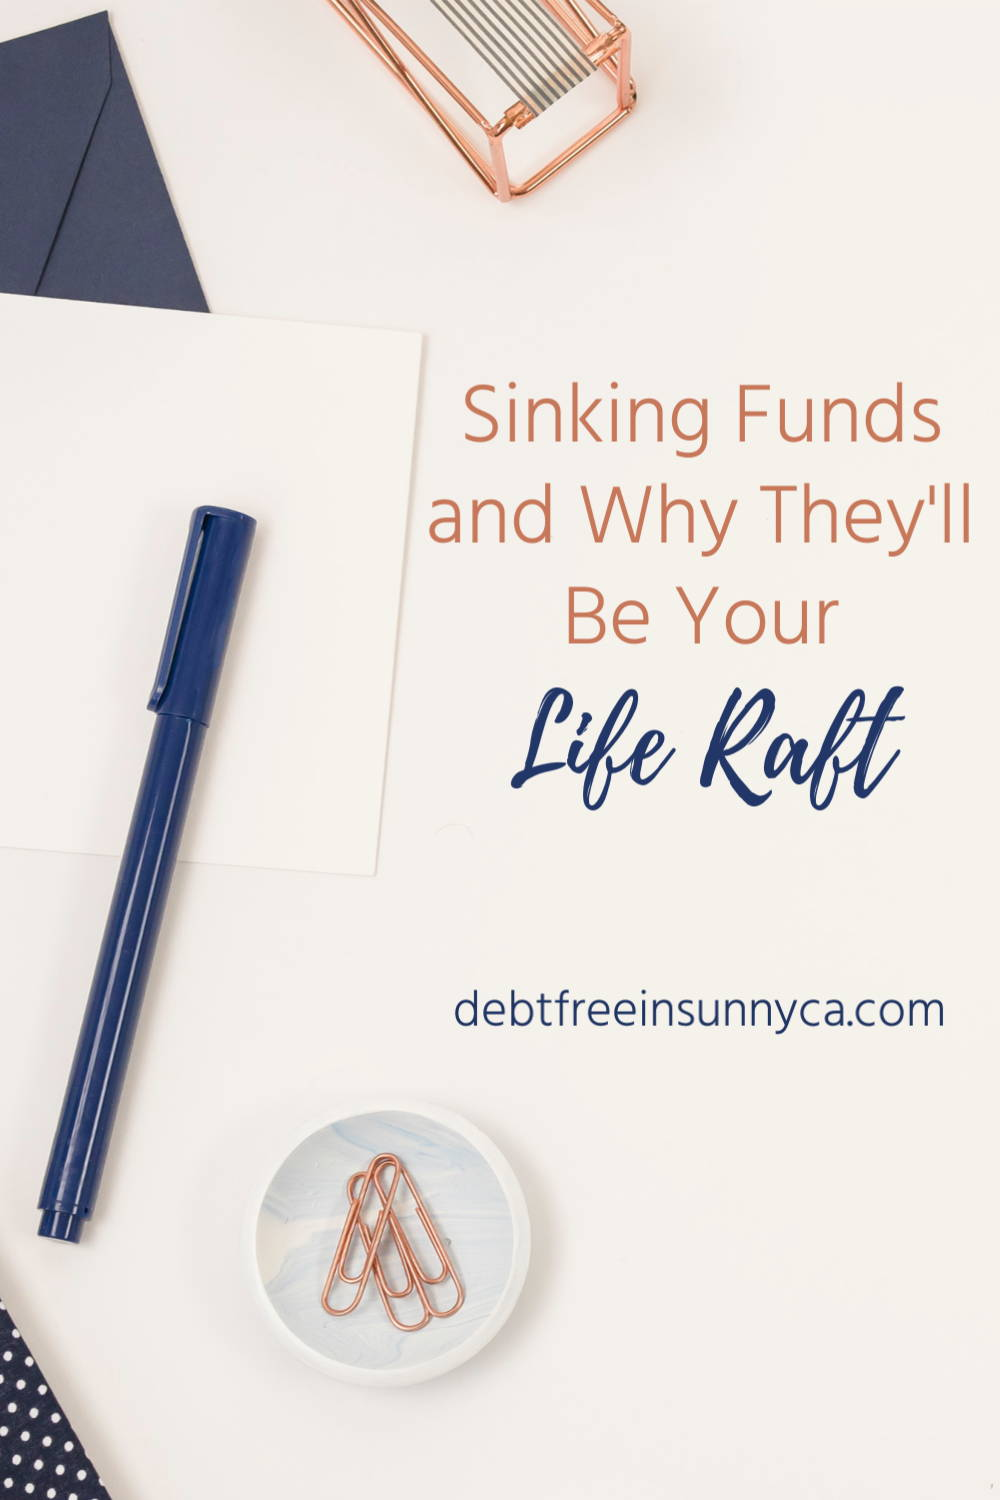 Debt Free in Sunny CA Sinking Funds and Why They'll Be Your Life Raft